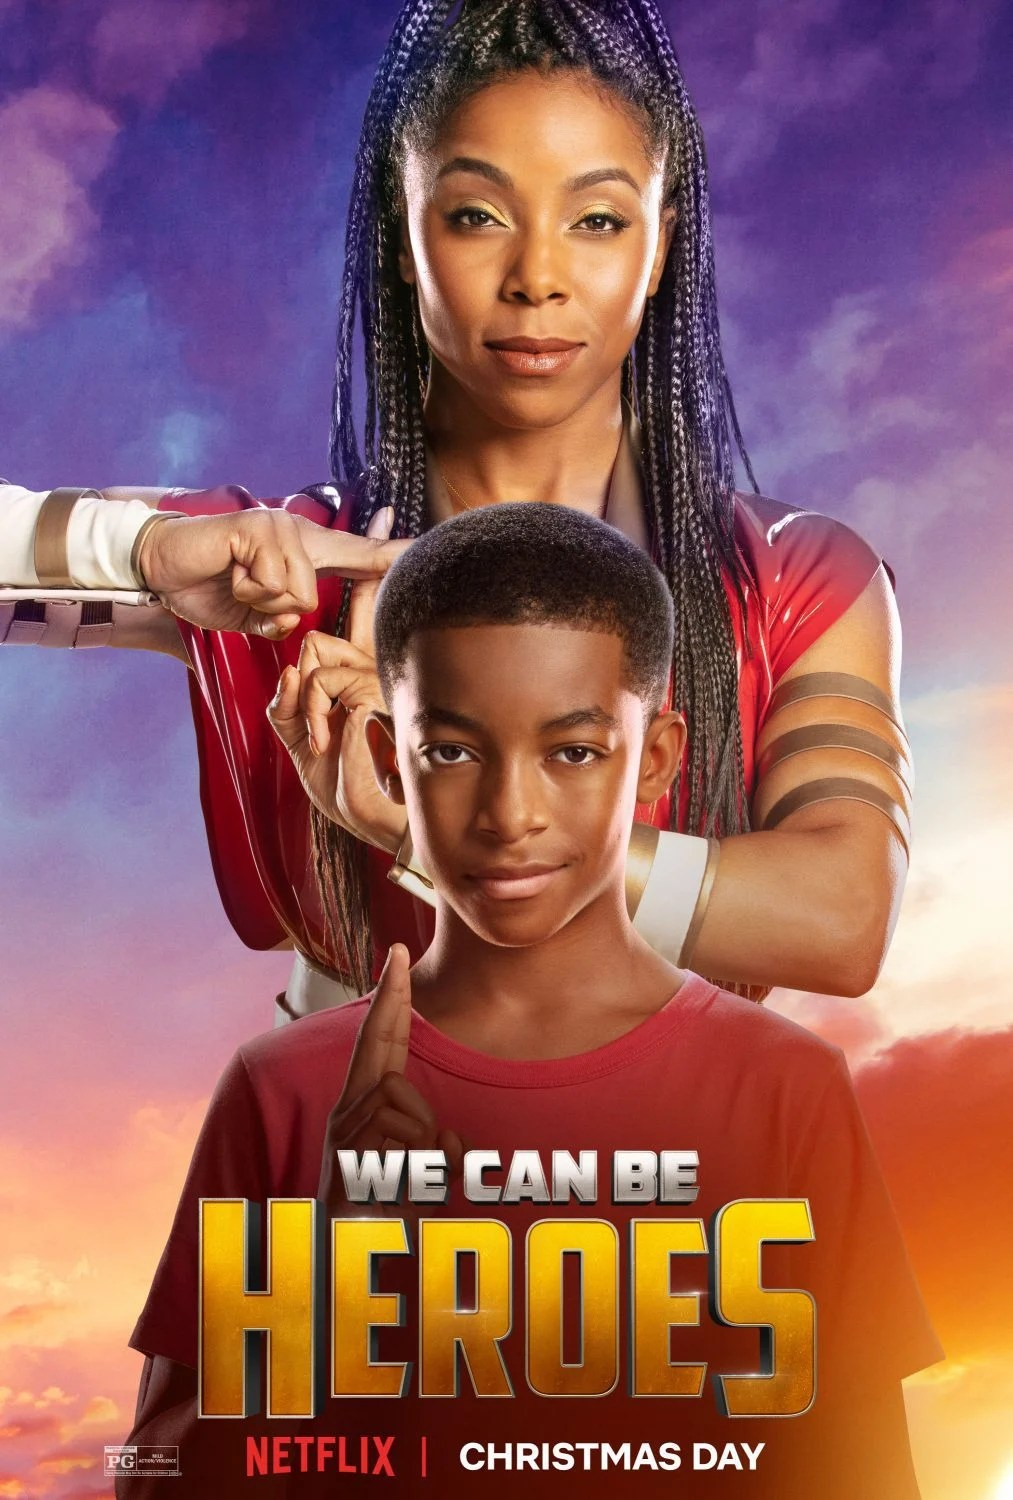 We Can Be Heroes on Netflix Cover Art